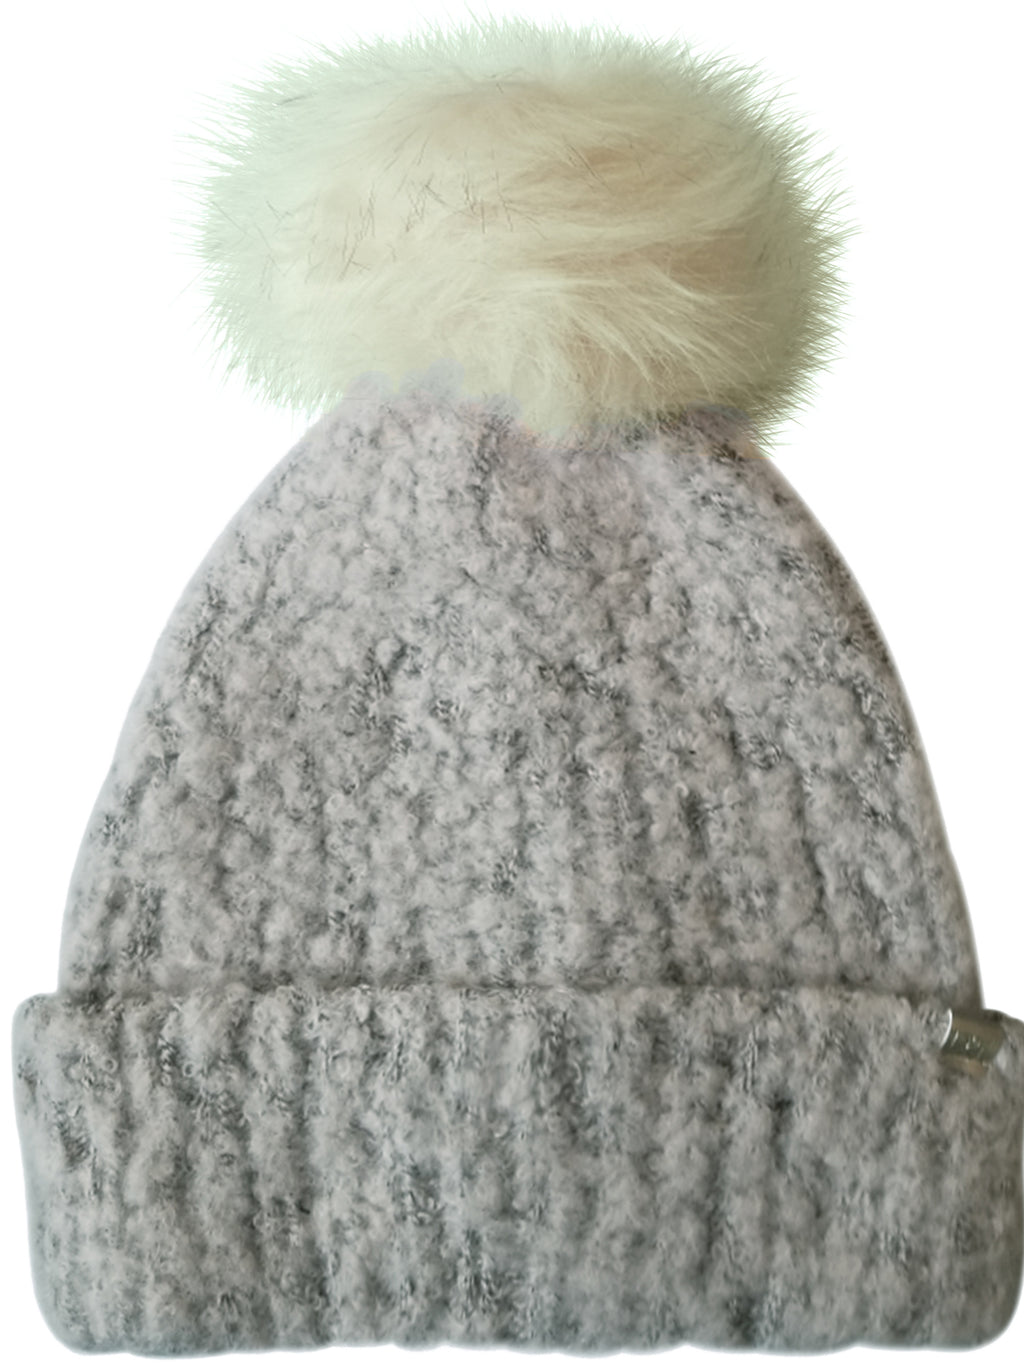 Ivory Knit Beanie Hat With Faux Fur Pom Pom